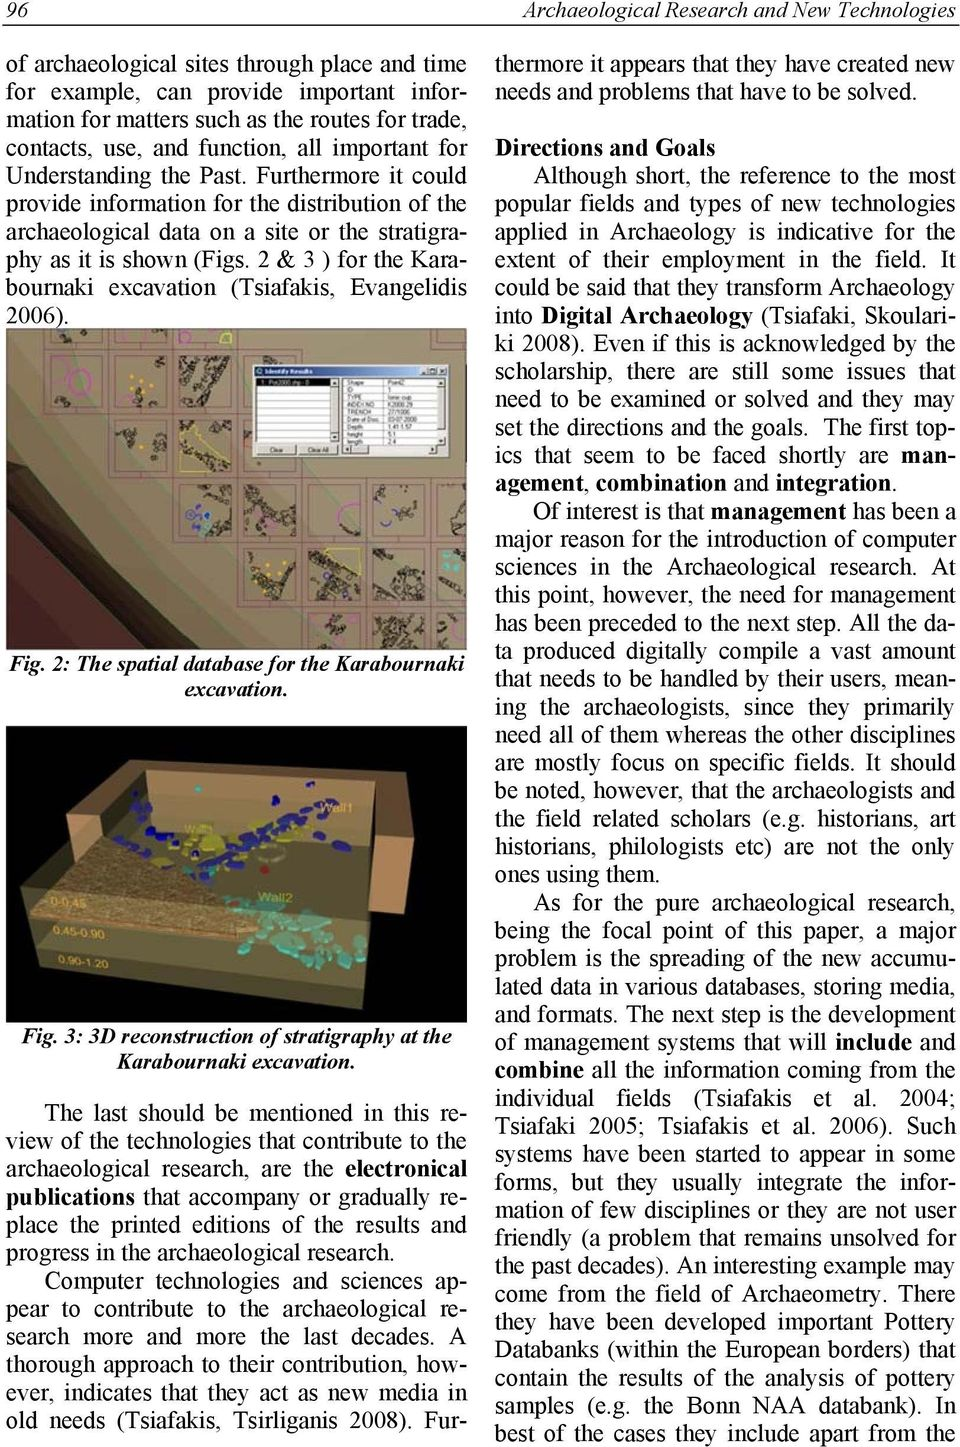 2 & 3 ) for the Karabournaki excavation (Tsiafakis, Evangelidis 2006). Fig. 2: The spatial database for the Karabournaki excavation. Fig. 3: 3D reconstruction of stratigraphy at the Karabournaki excavation.